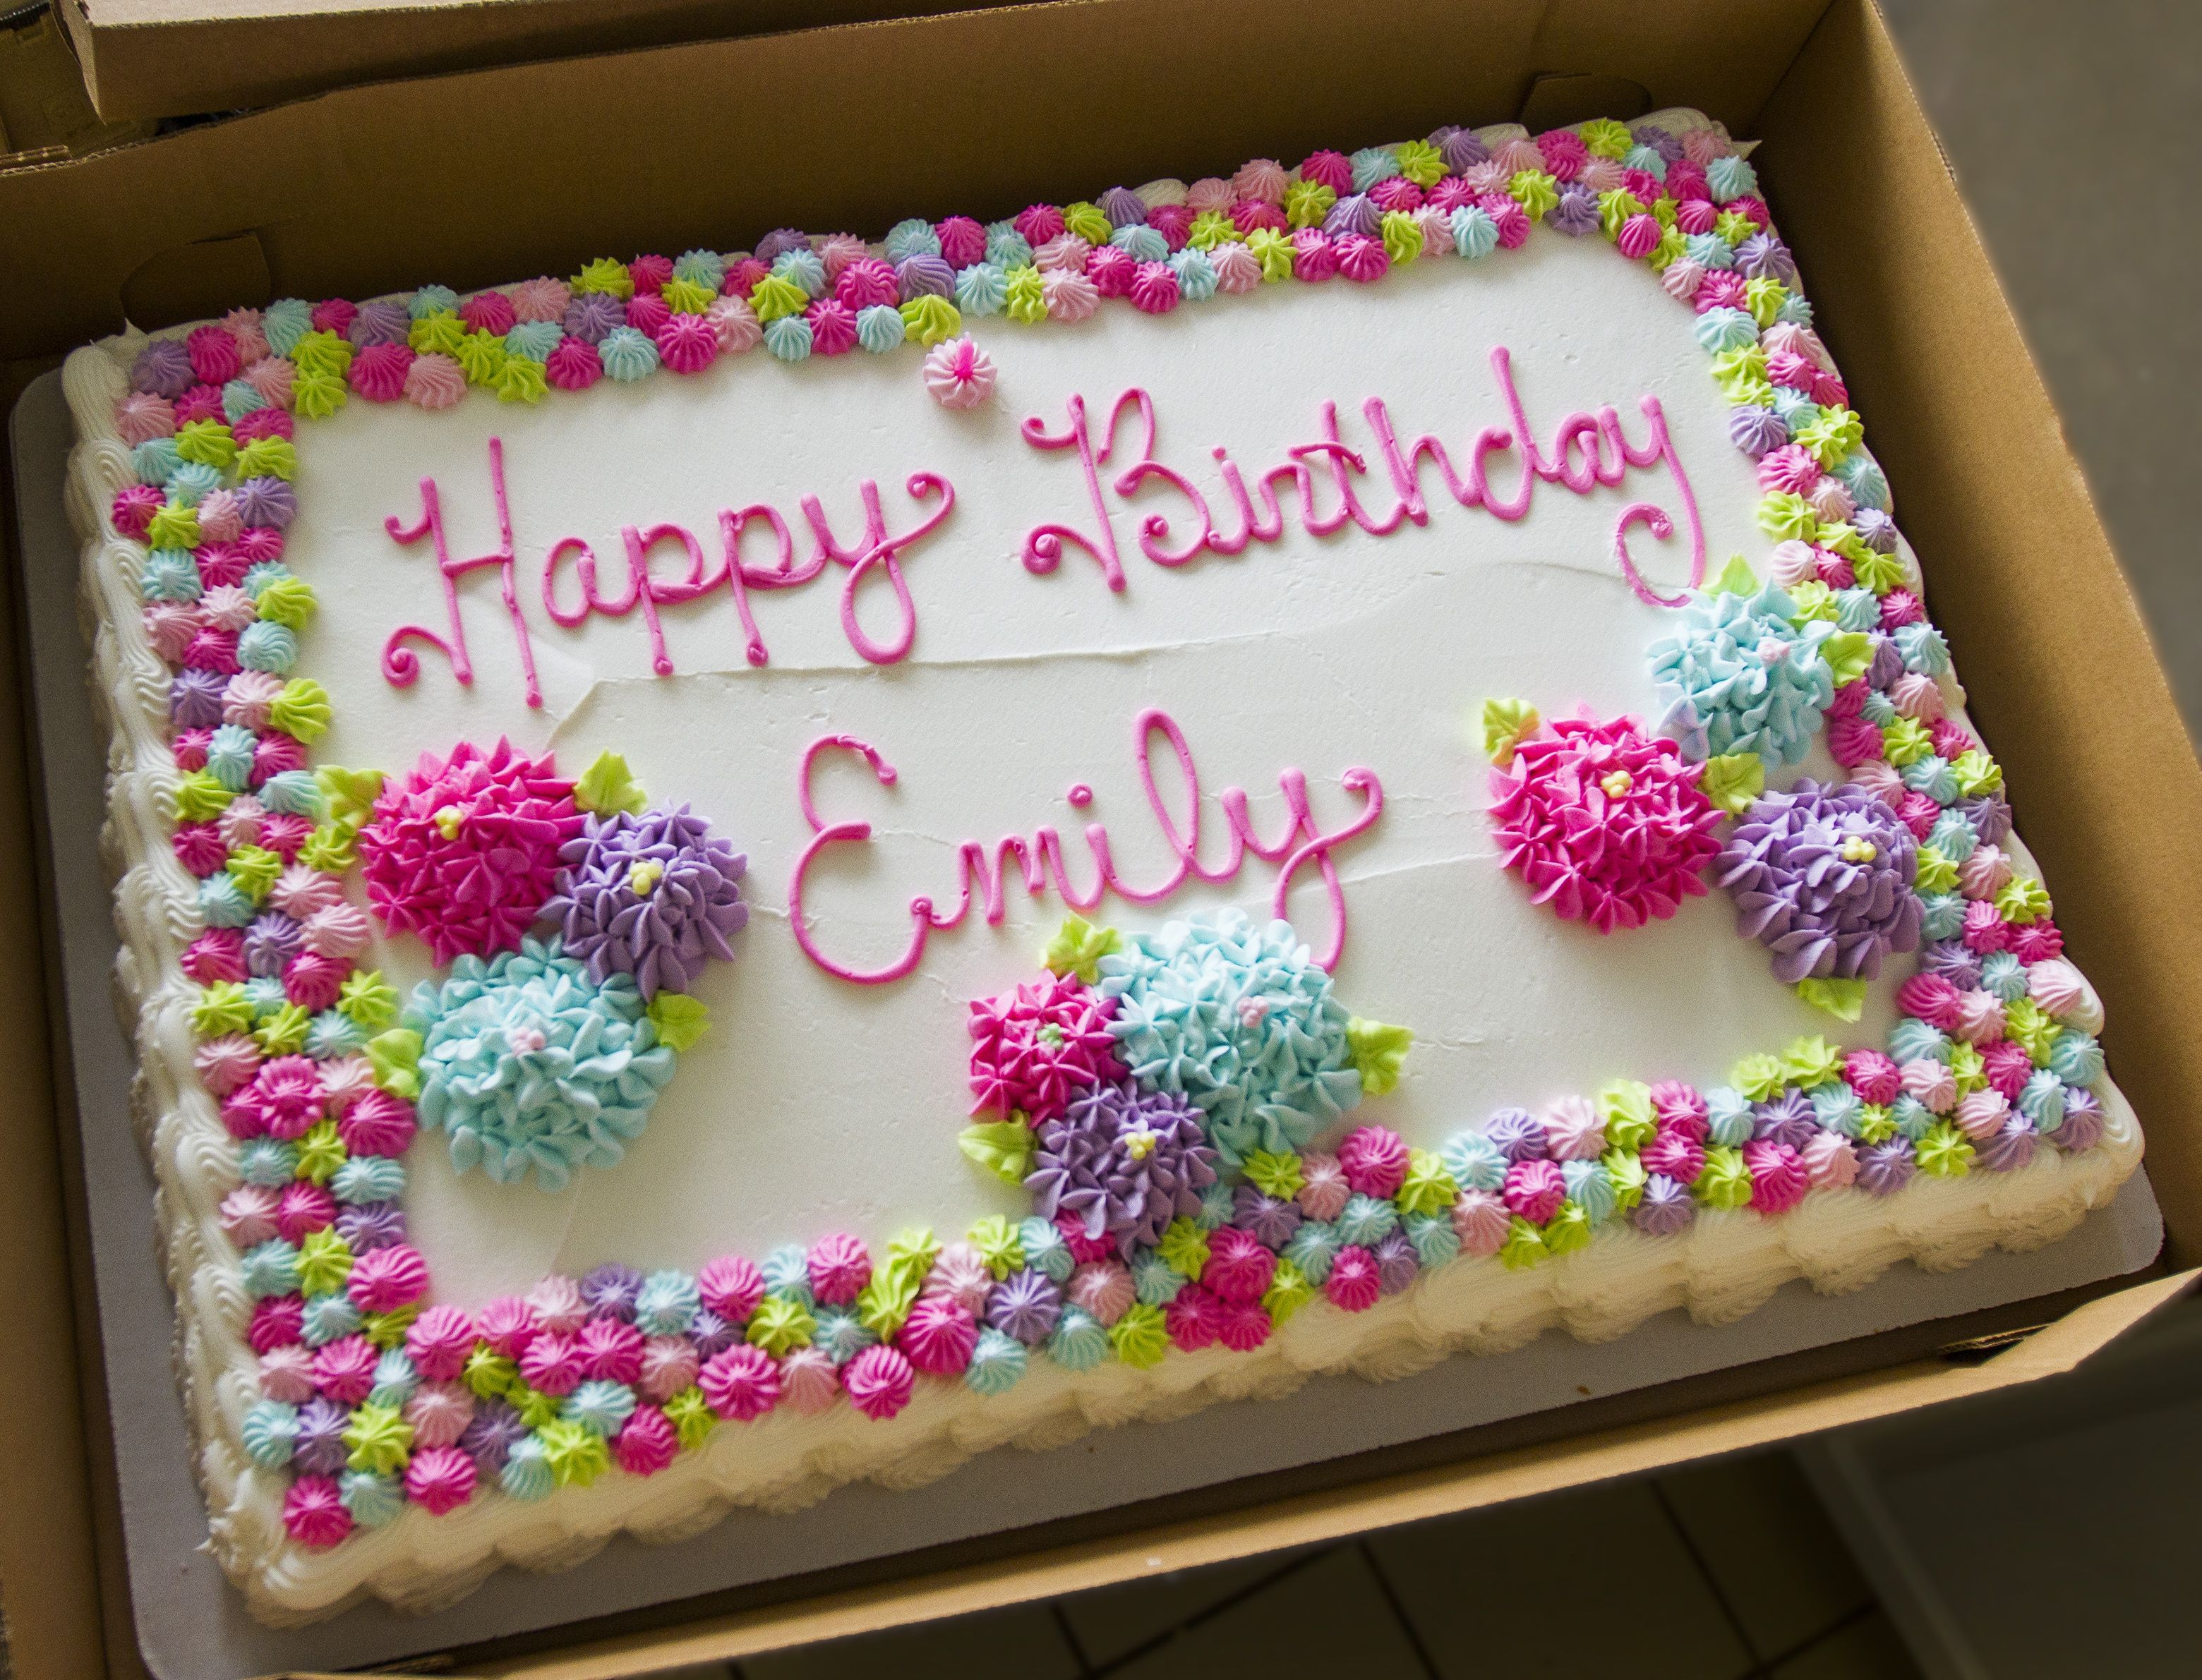 Sheet Cake Birthday Decorating Ideas : A classic floral sheet cake for a birthday celebration ...